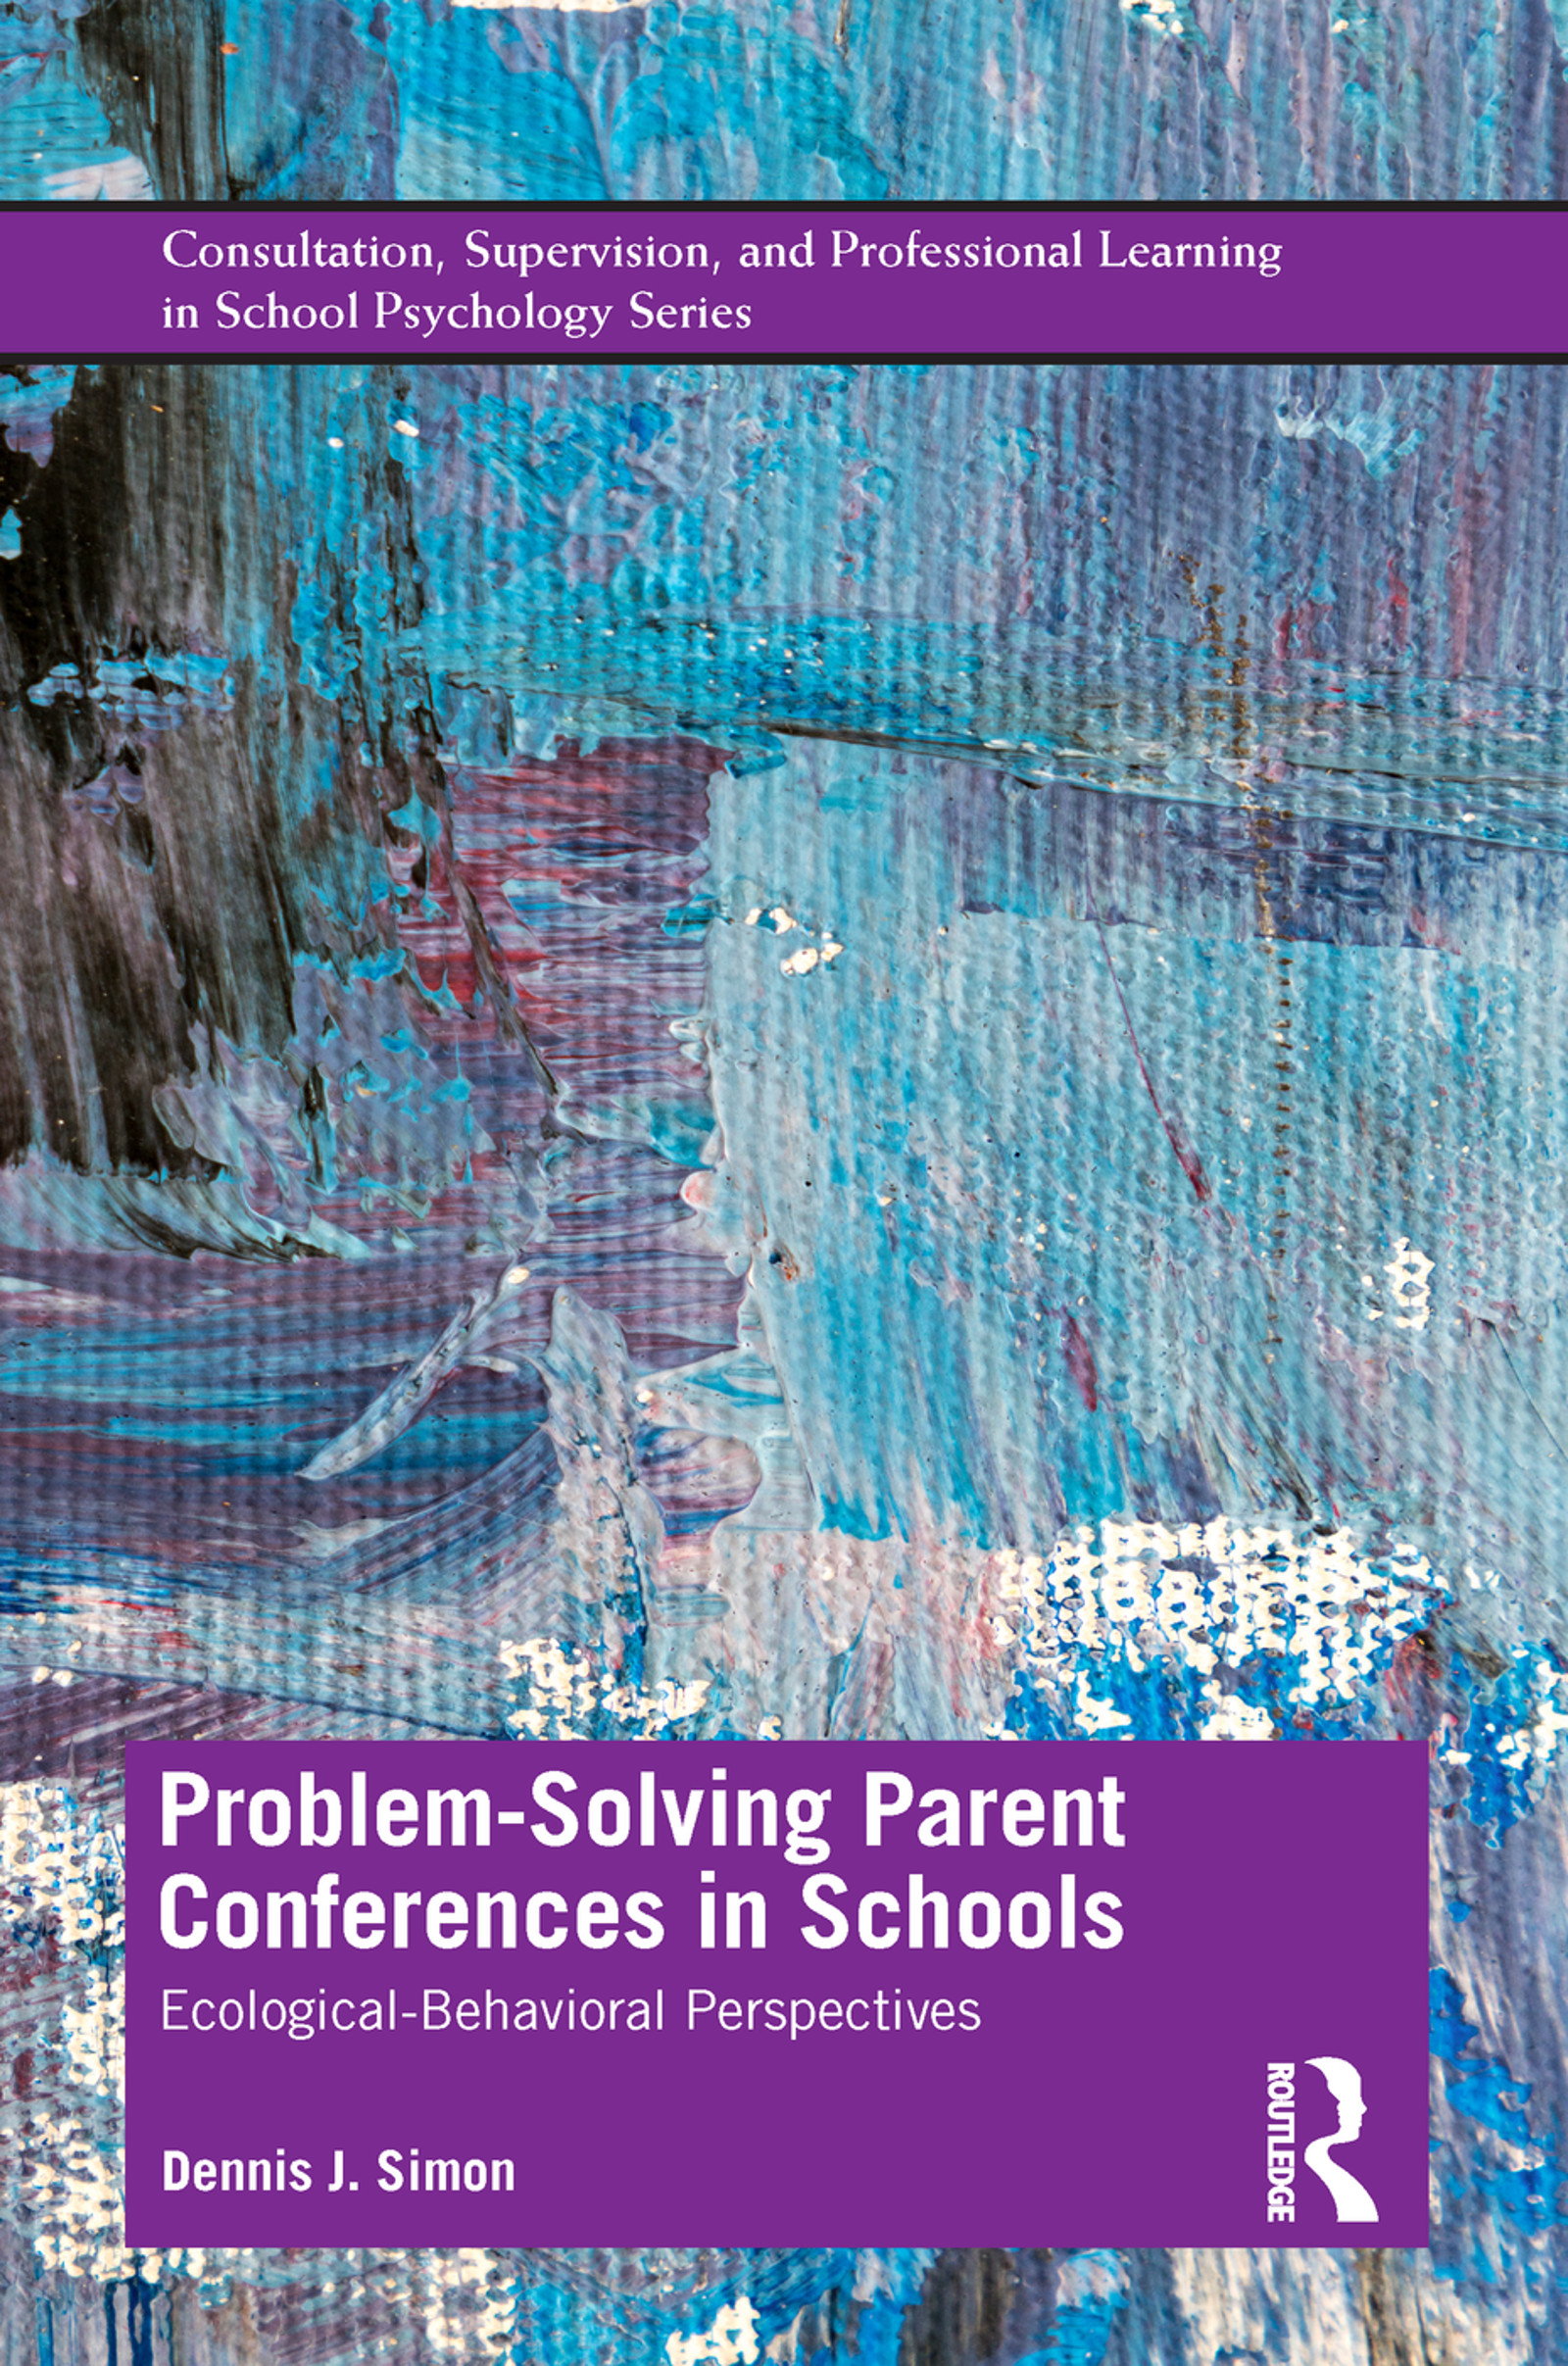 Problem-Solving Parent Conferences in Schools: Ecological-Behavioral Perspectives book cover